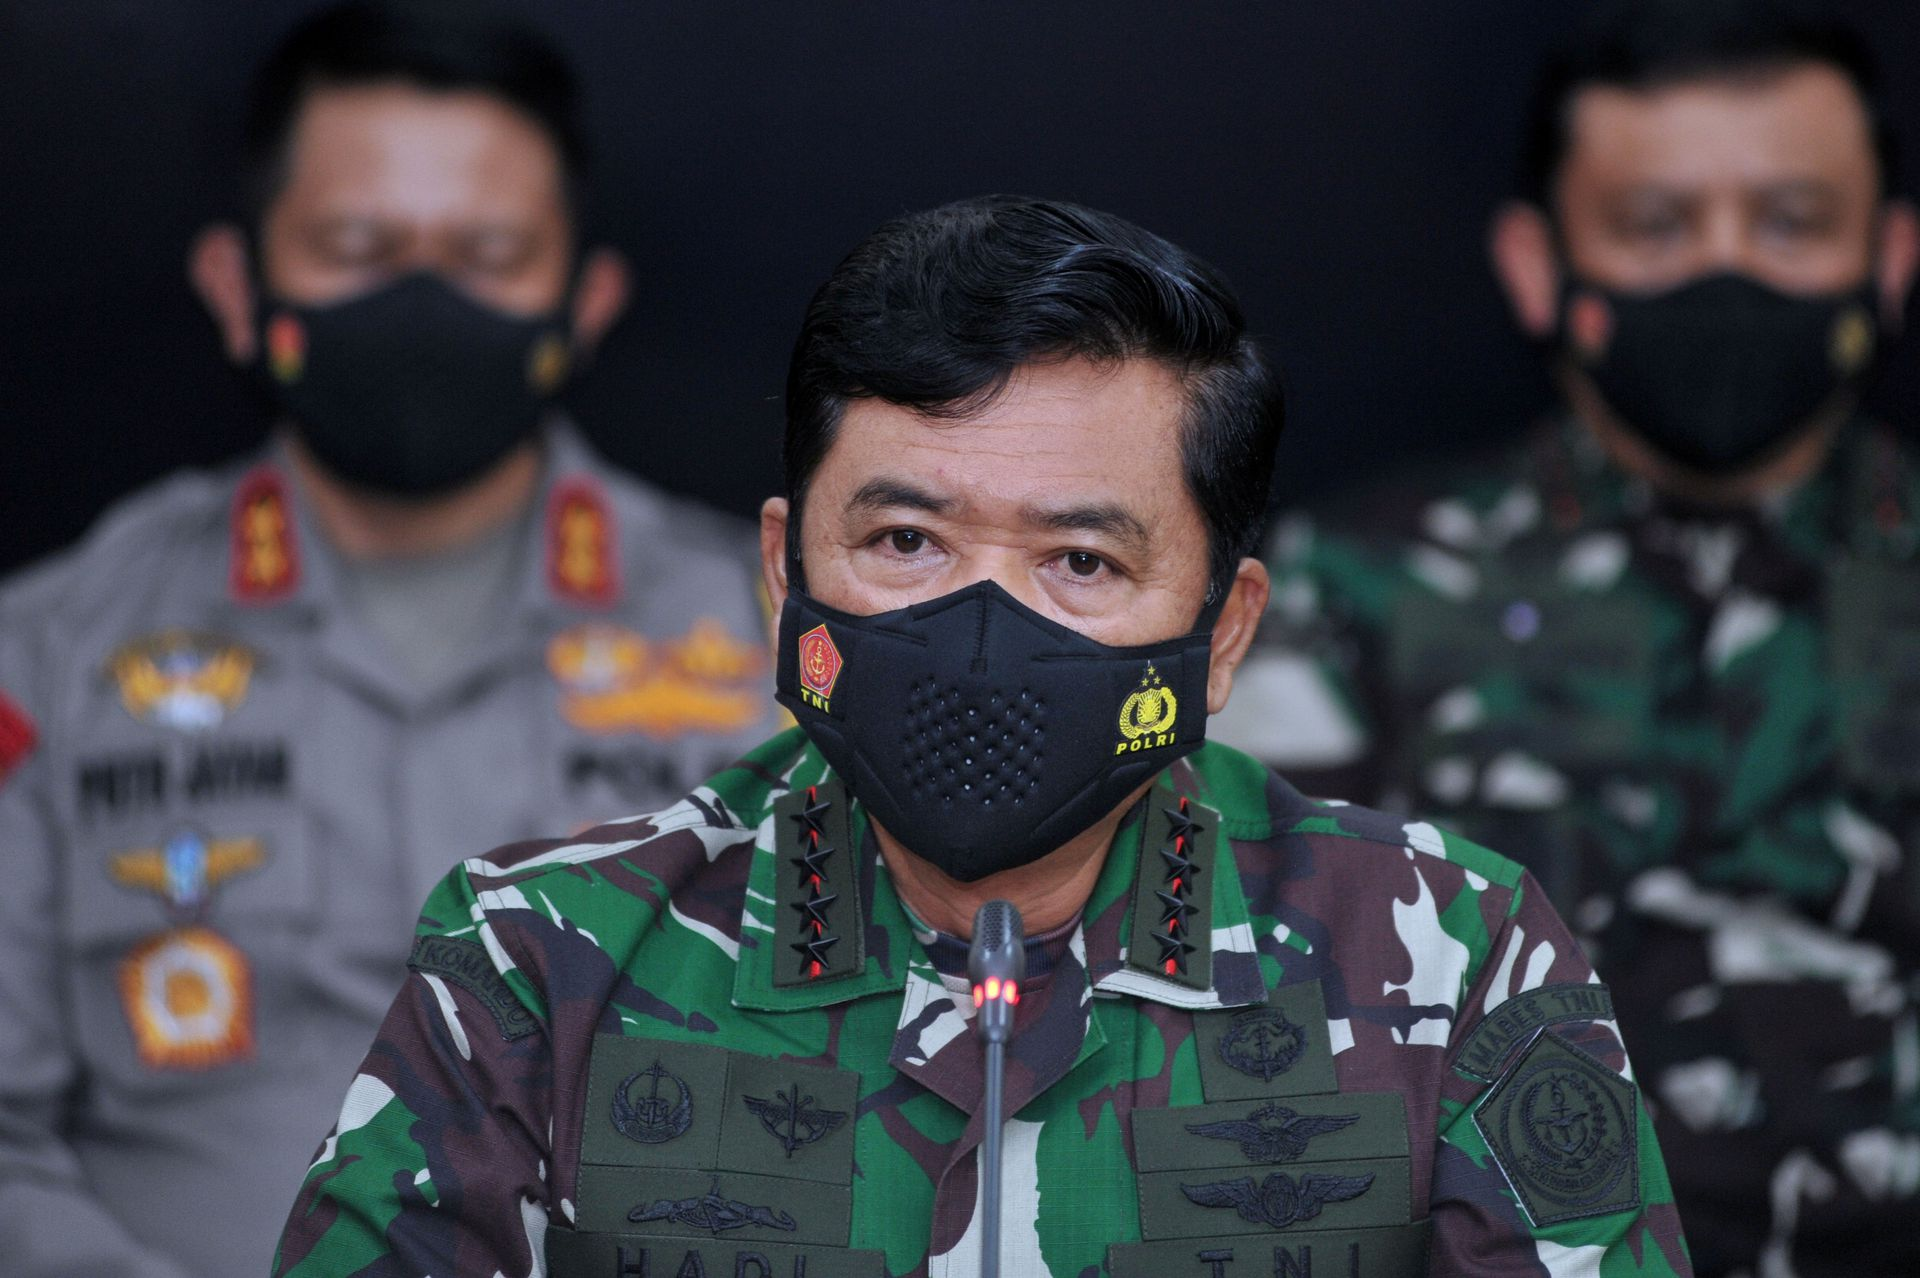 Indonesian military chief Hadi Tjahjanto speaks during a news conference about the search operation of submarine KRI Nanggala-402, which has sunk in the north of Bali sea and all of its 53 crew have died, at the I Gusti Ngurah Rai airbase in Bali, Indonesia, April 25, 2021 in this photo taken by Antara Foto. Photo: Antara Foto/Fikri Yusuf/ via Reuters